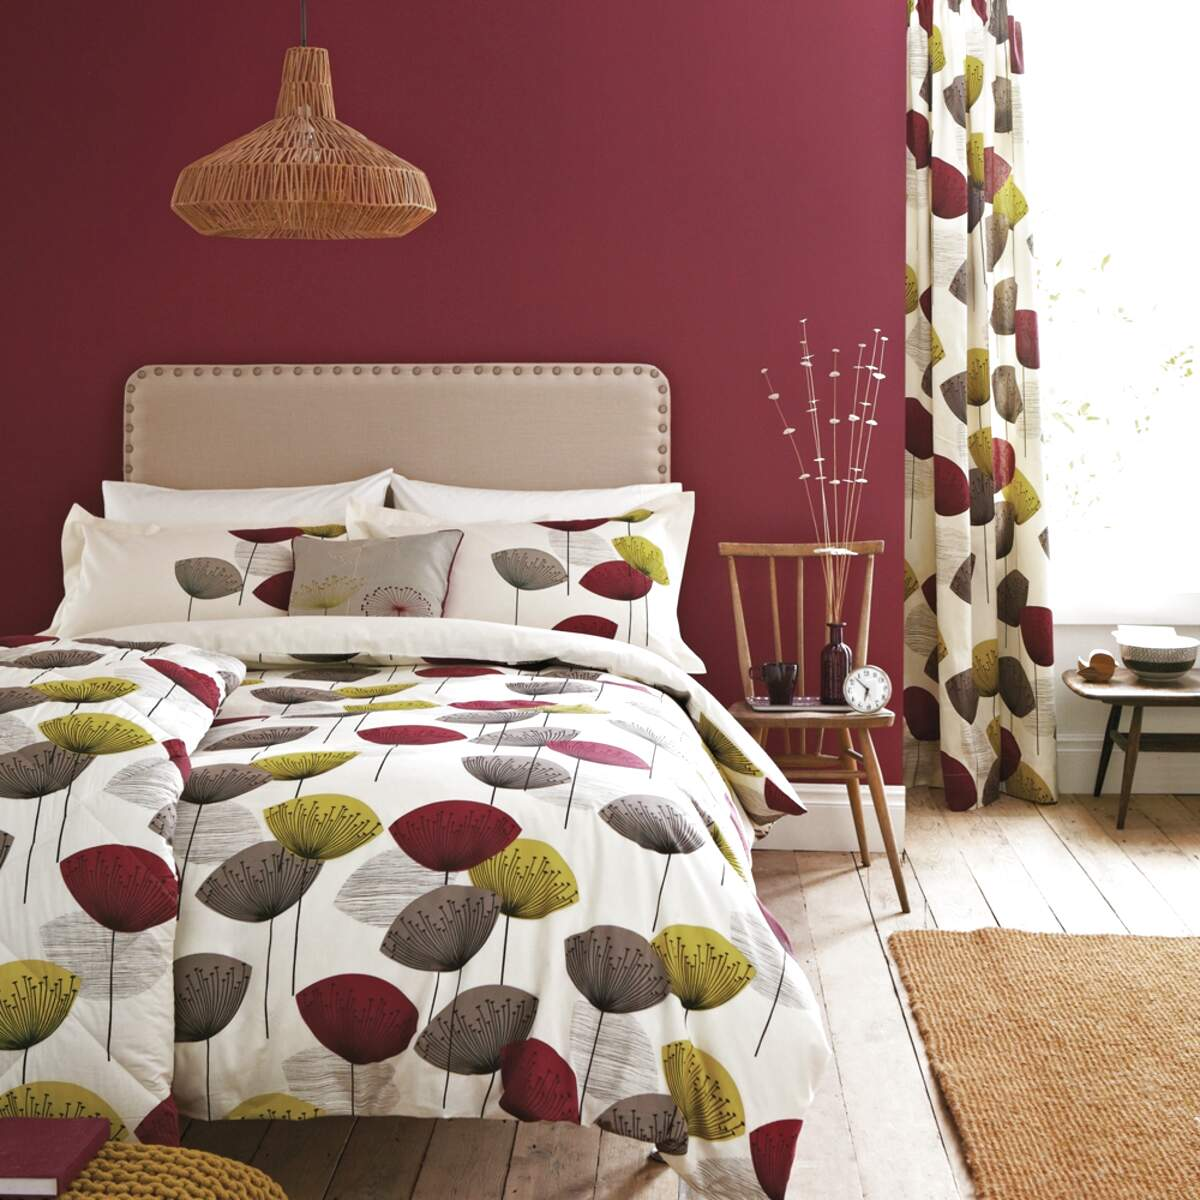 Sanderson Dandelion Clocks Bedding For Sale In Uk